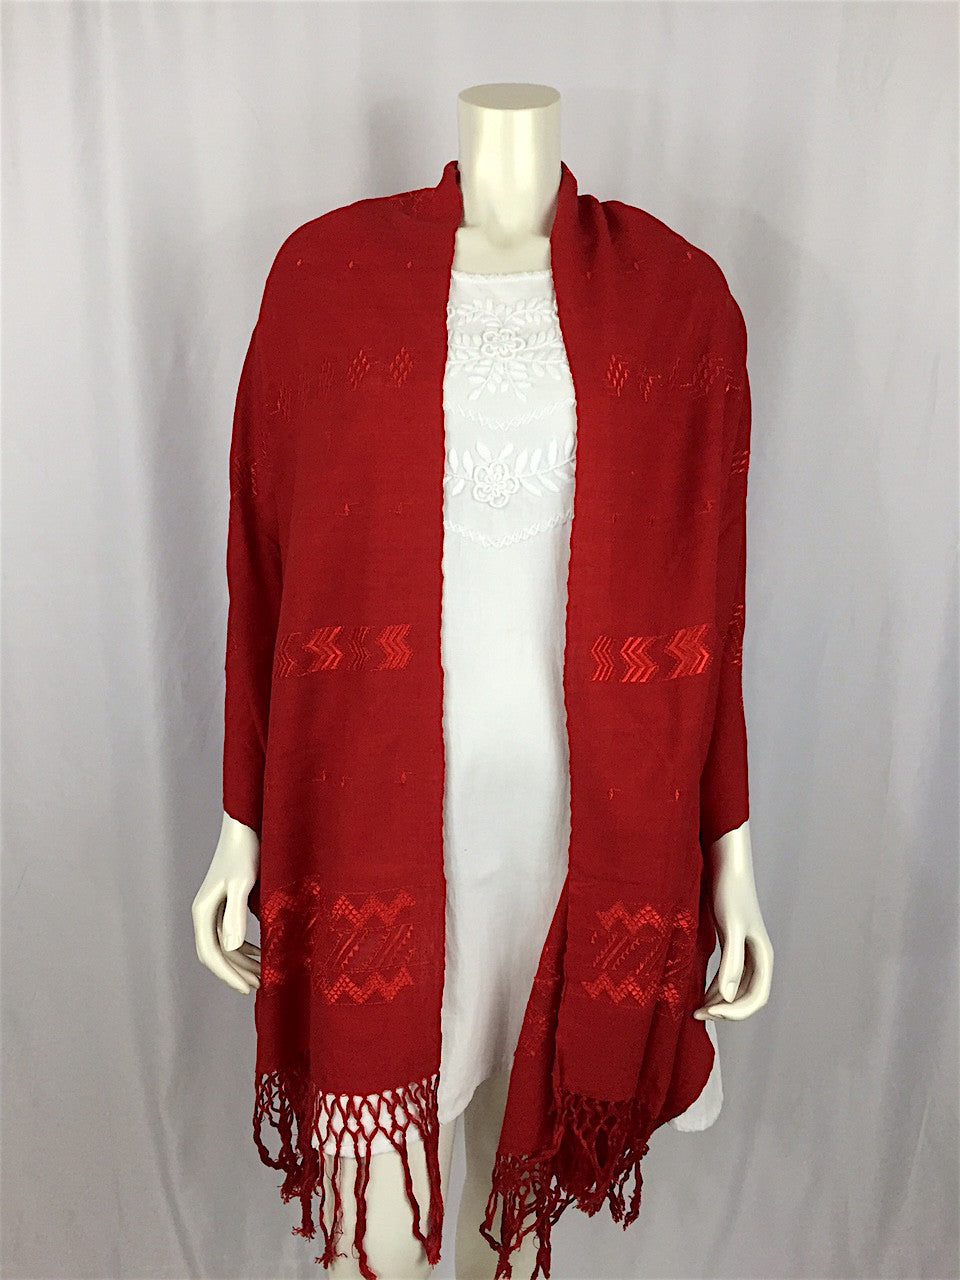 Carranza Handwoven Wrap - red